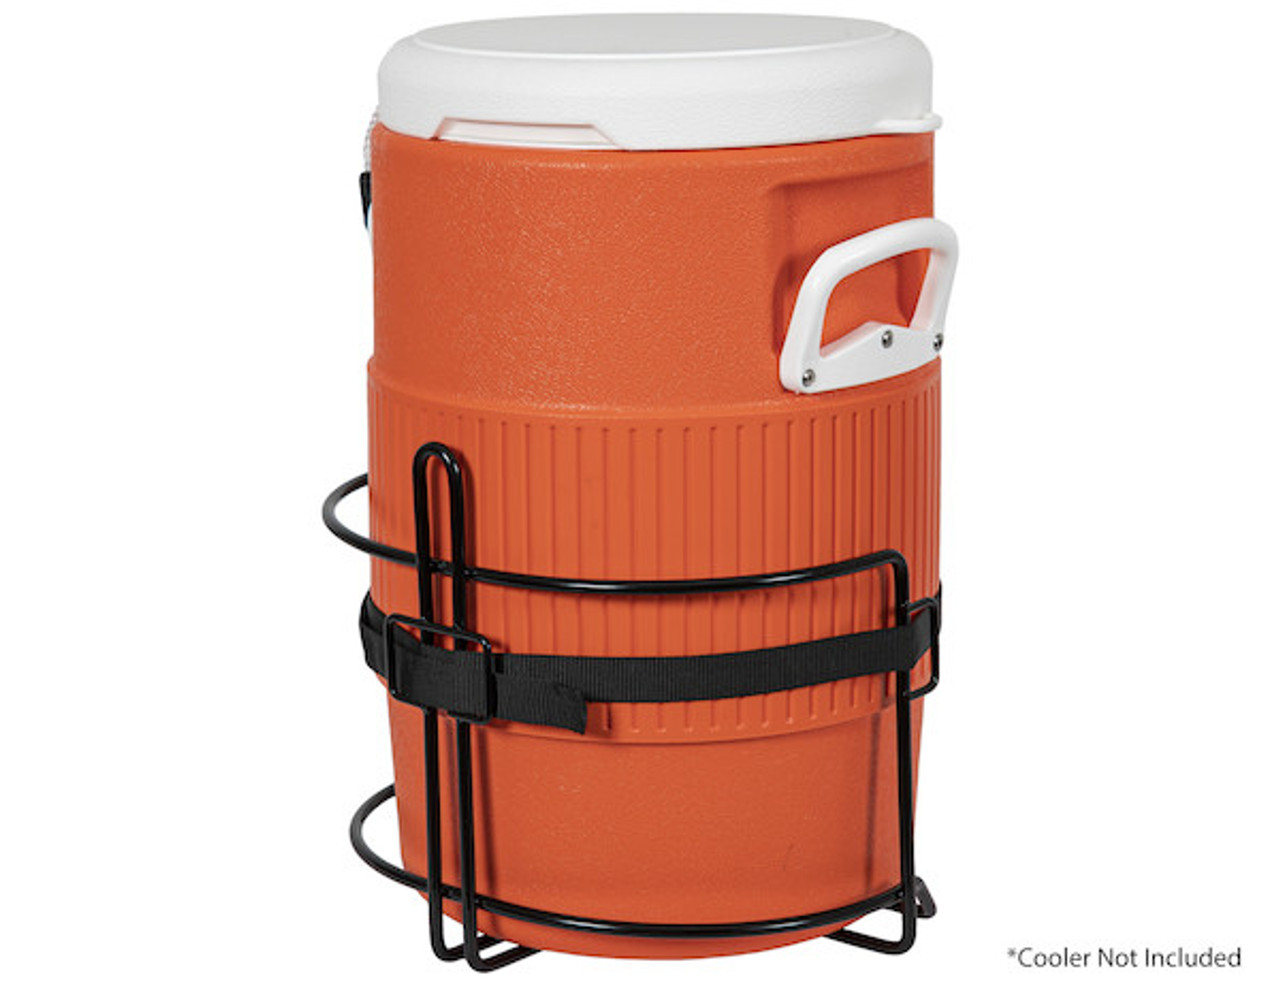 Buyers 5201007 5 Gallon Wire Form Water Cooler Rack for Trailers Picture # 6